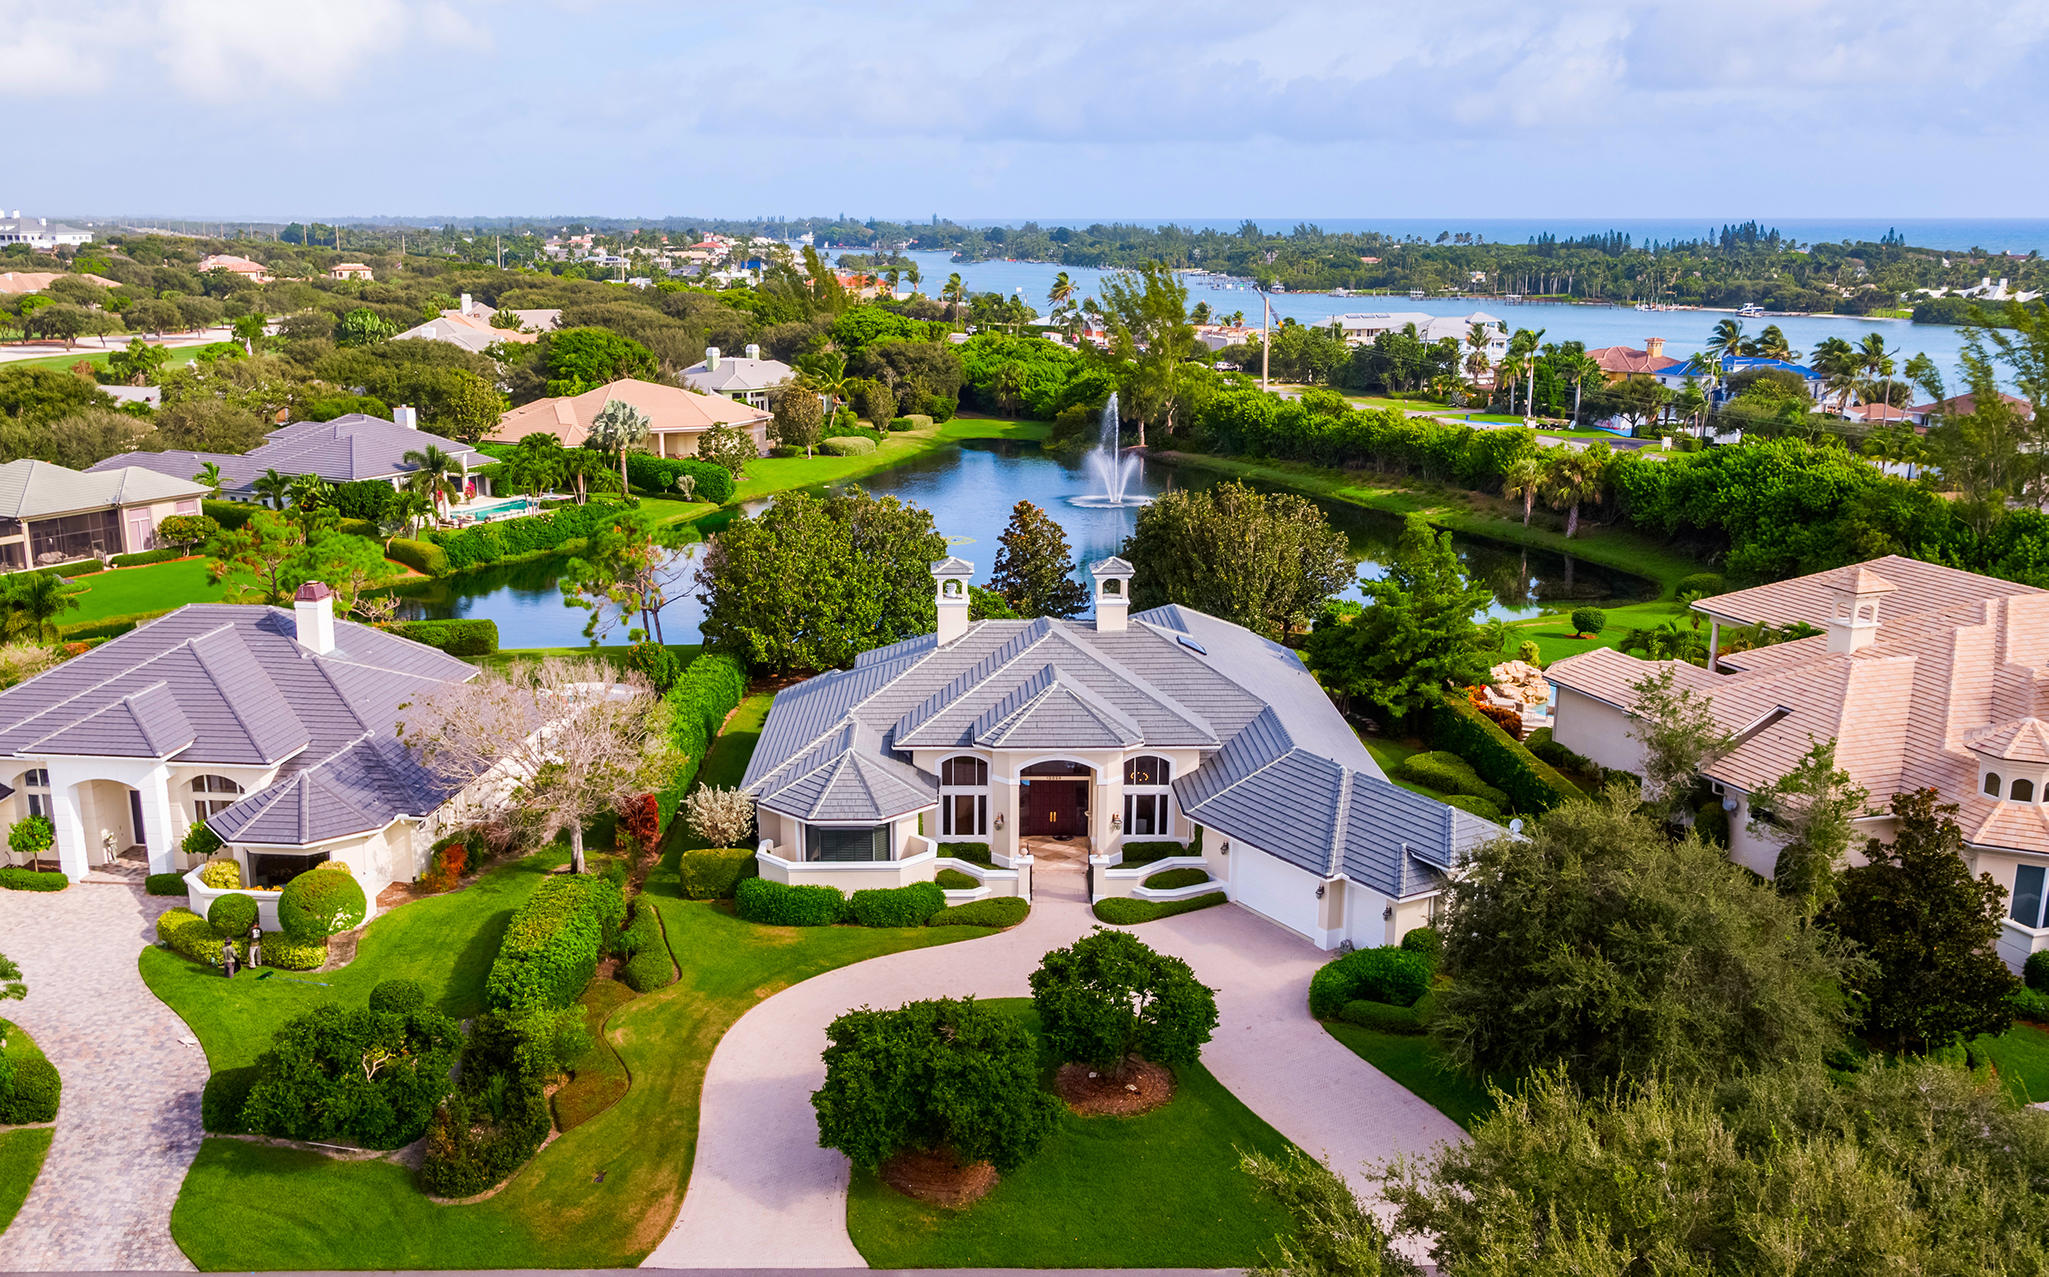 New Home for sale at 12029 Intracoastal Terrace in Tequesta